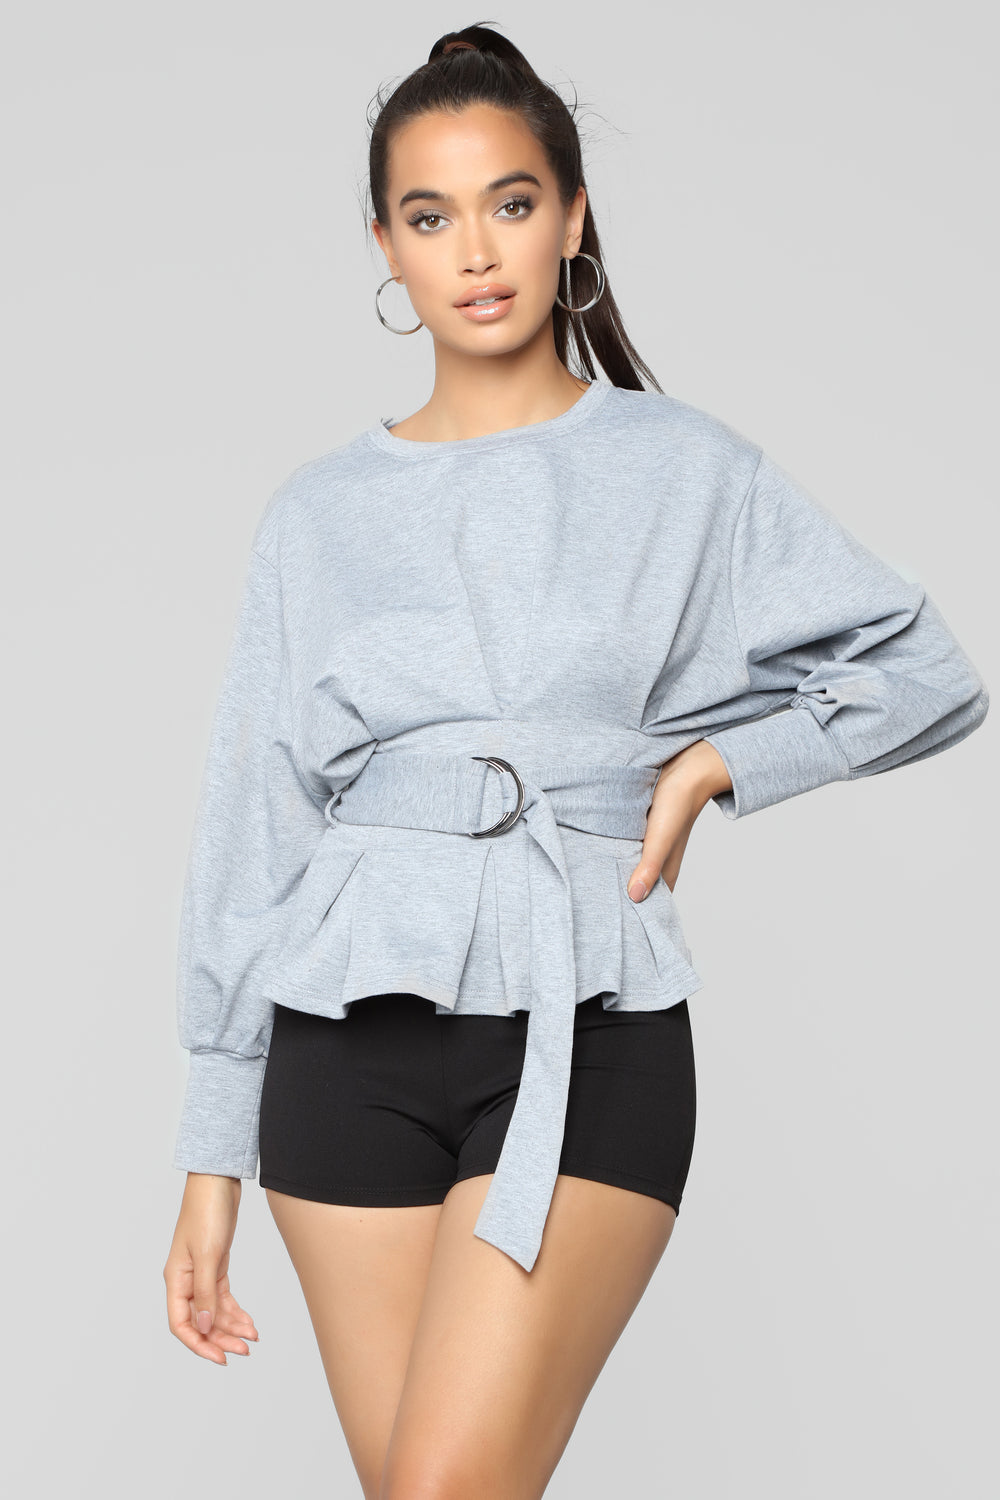 City Babe Belted Top - Heather Grey